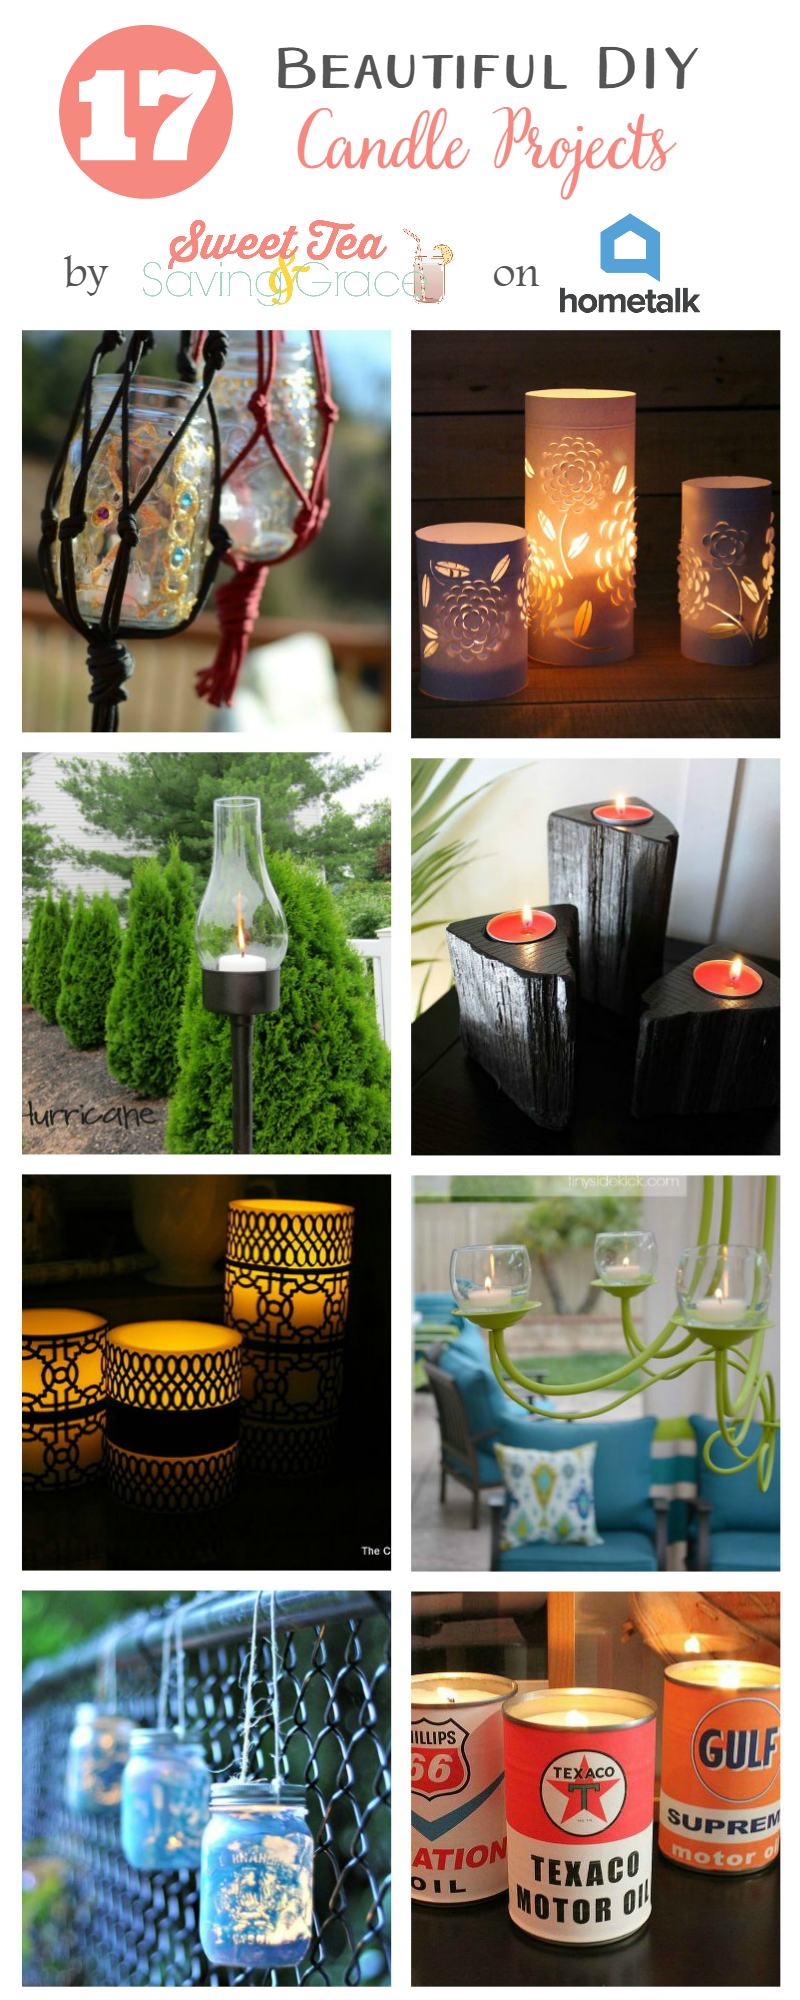 17 Beautiful DIY Candle Projects  |  Sweet Tea & Saving Grace